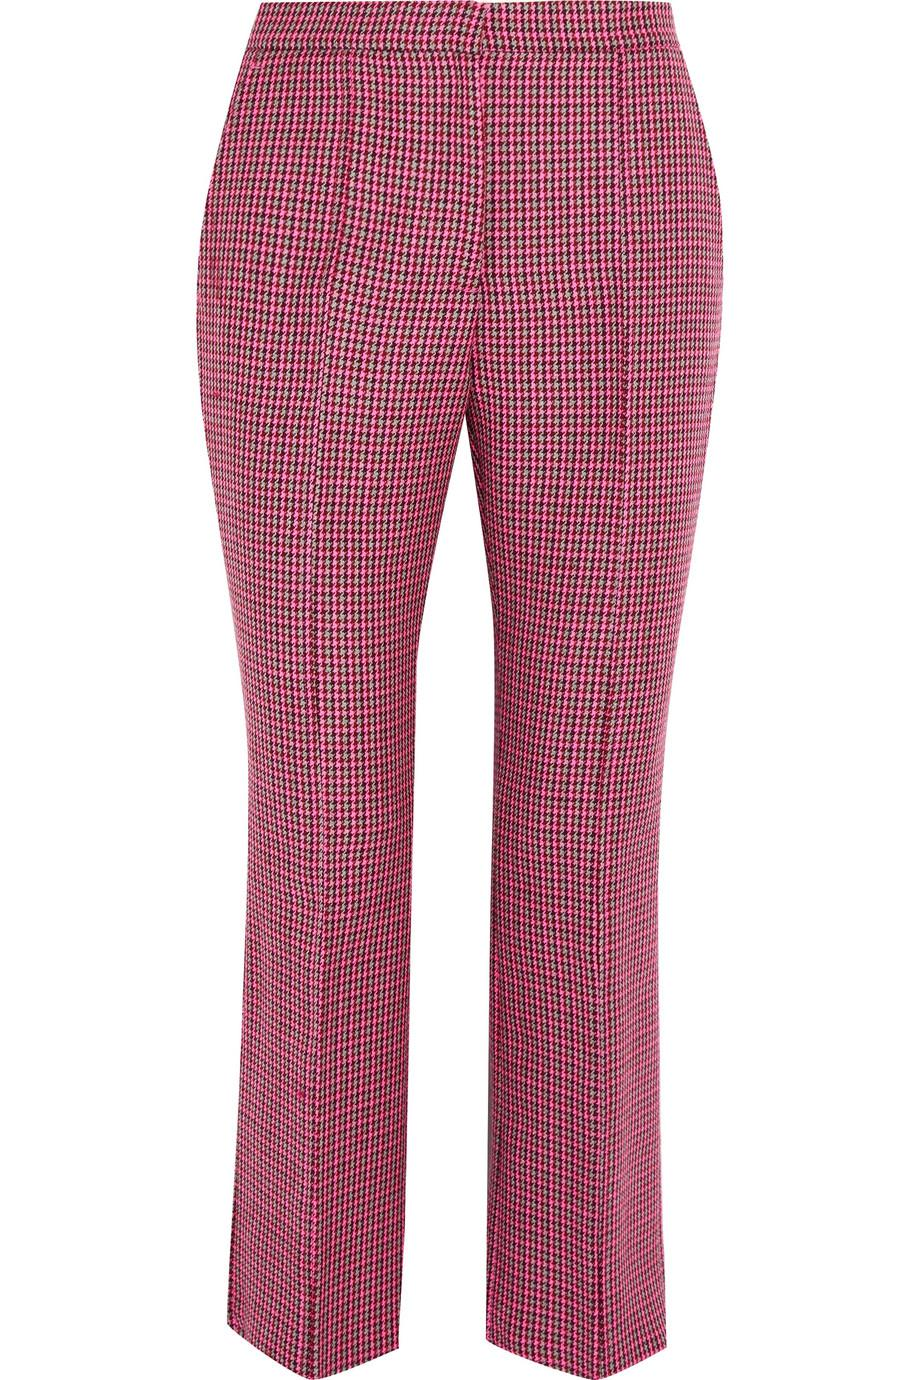 Cropped Houndstooth Wool Flared Pants - Pink Msgm cSMzp